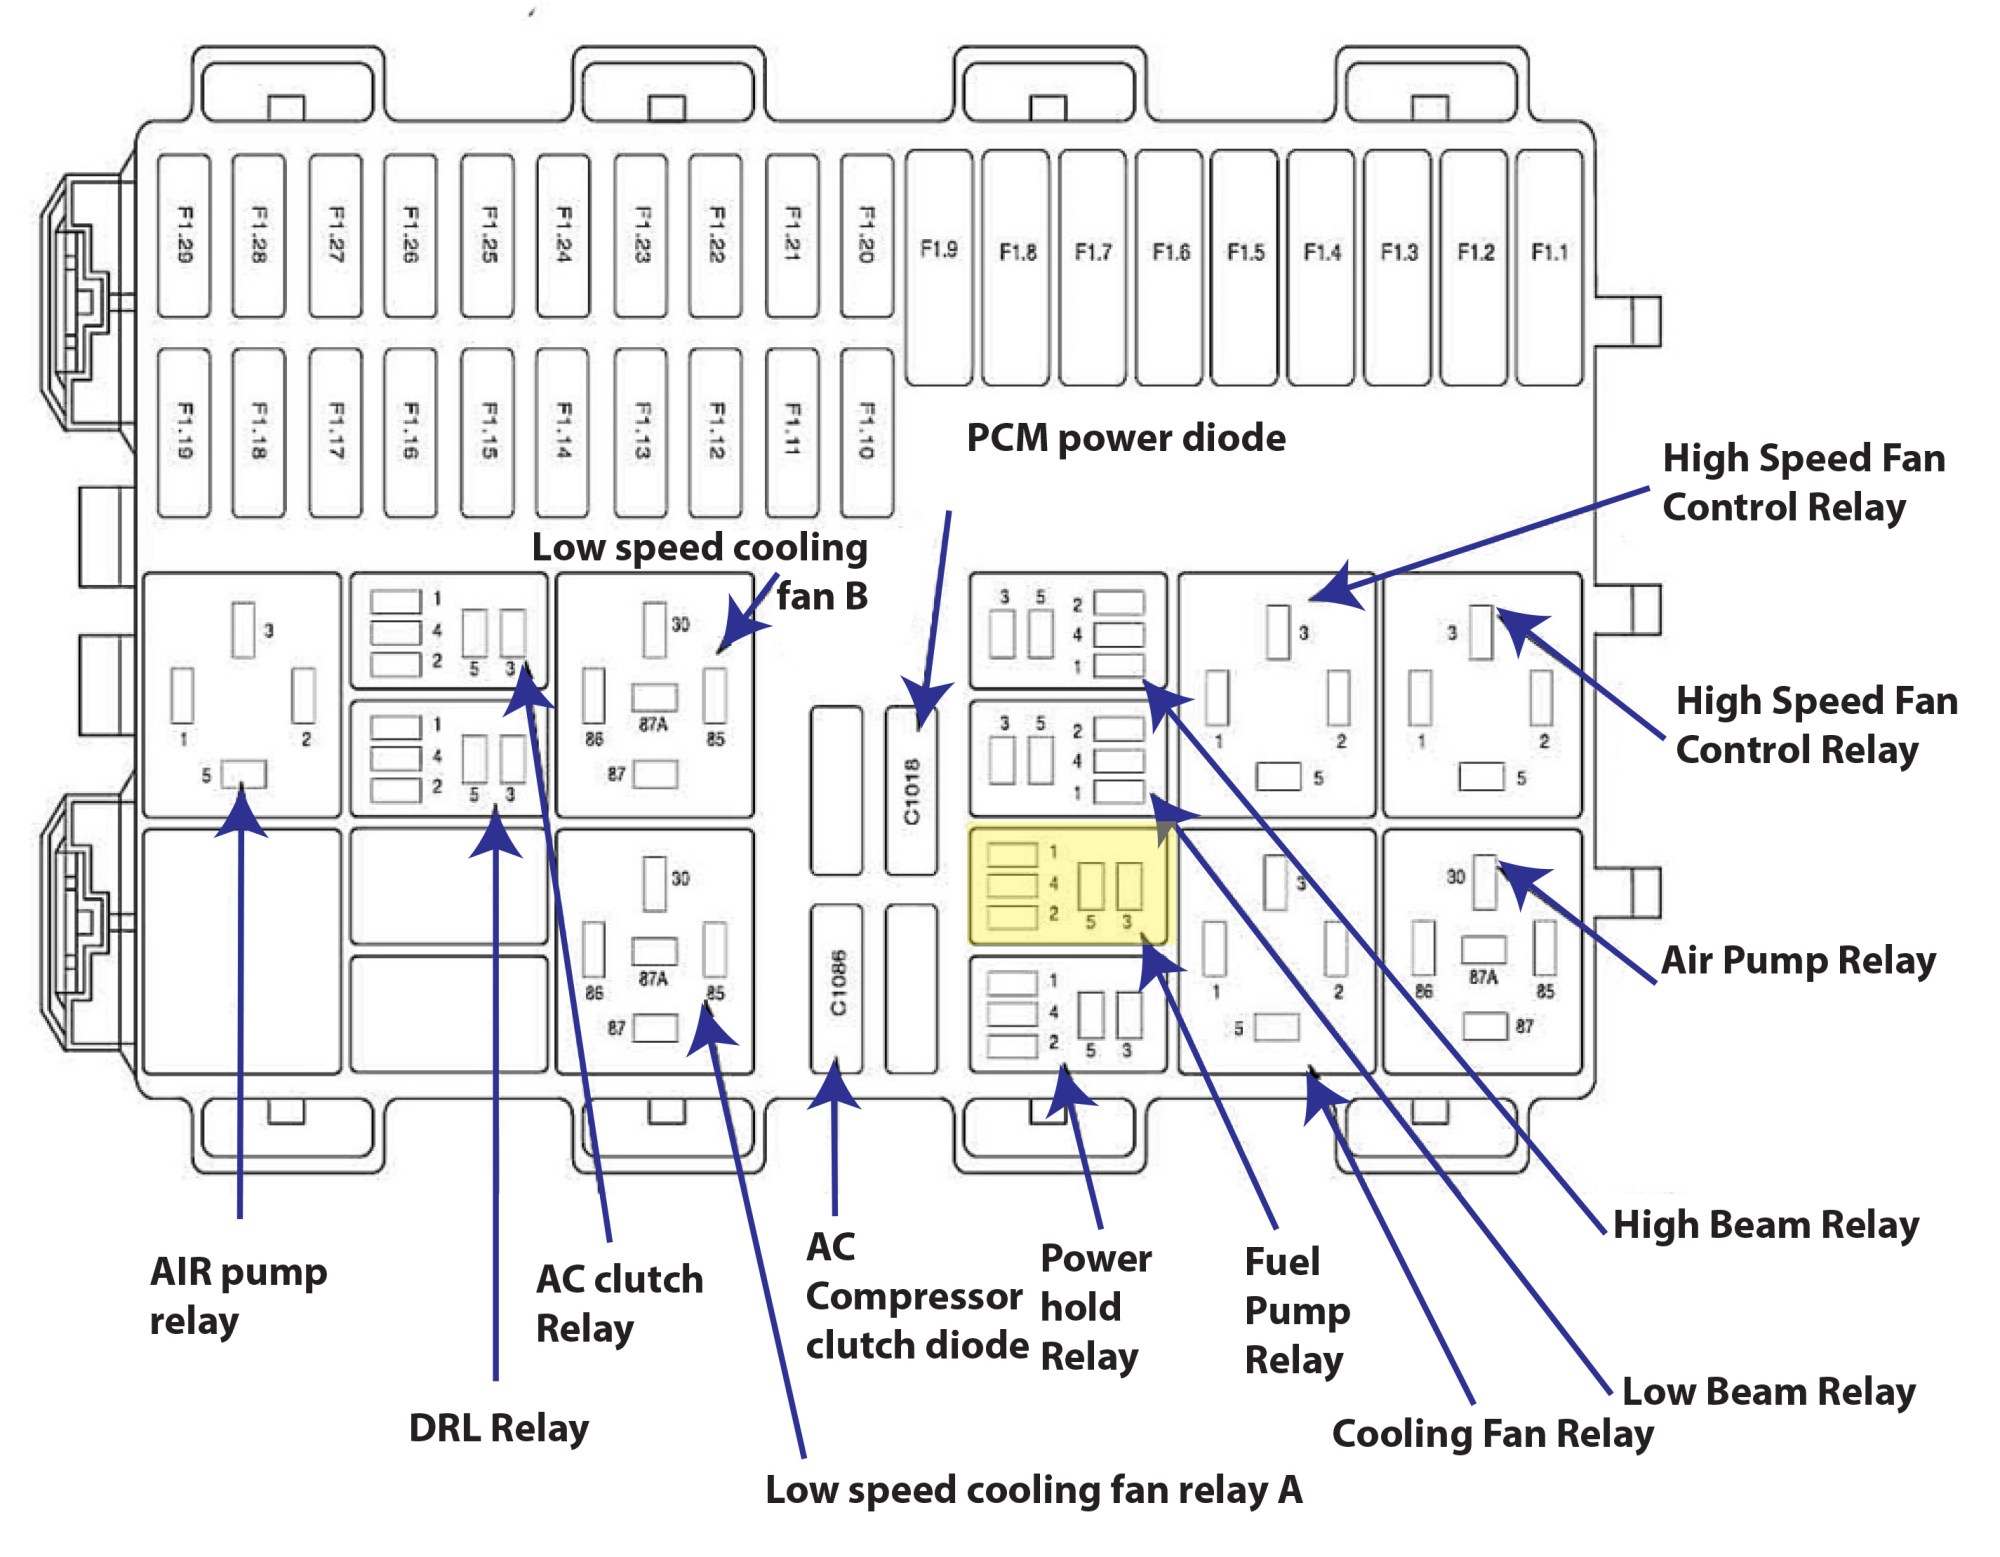 hight resolution of ford focus fuse relay box location video wiring diagrams show ford focus fuse relay box location video